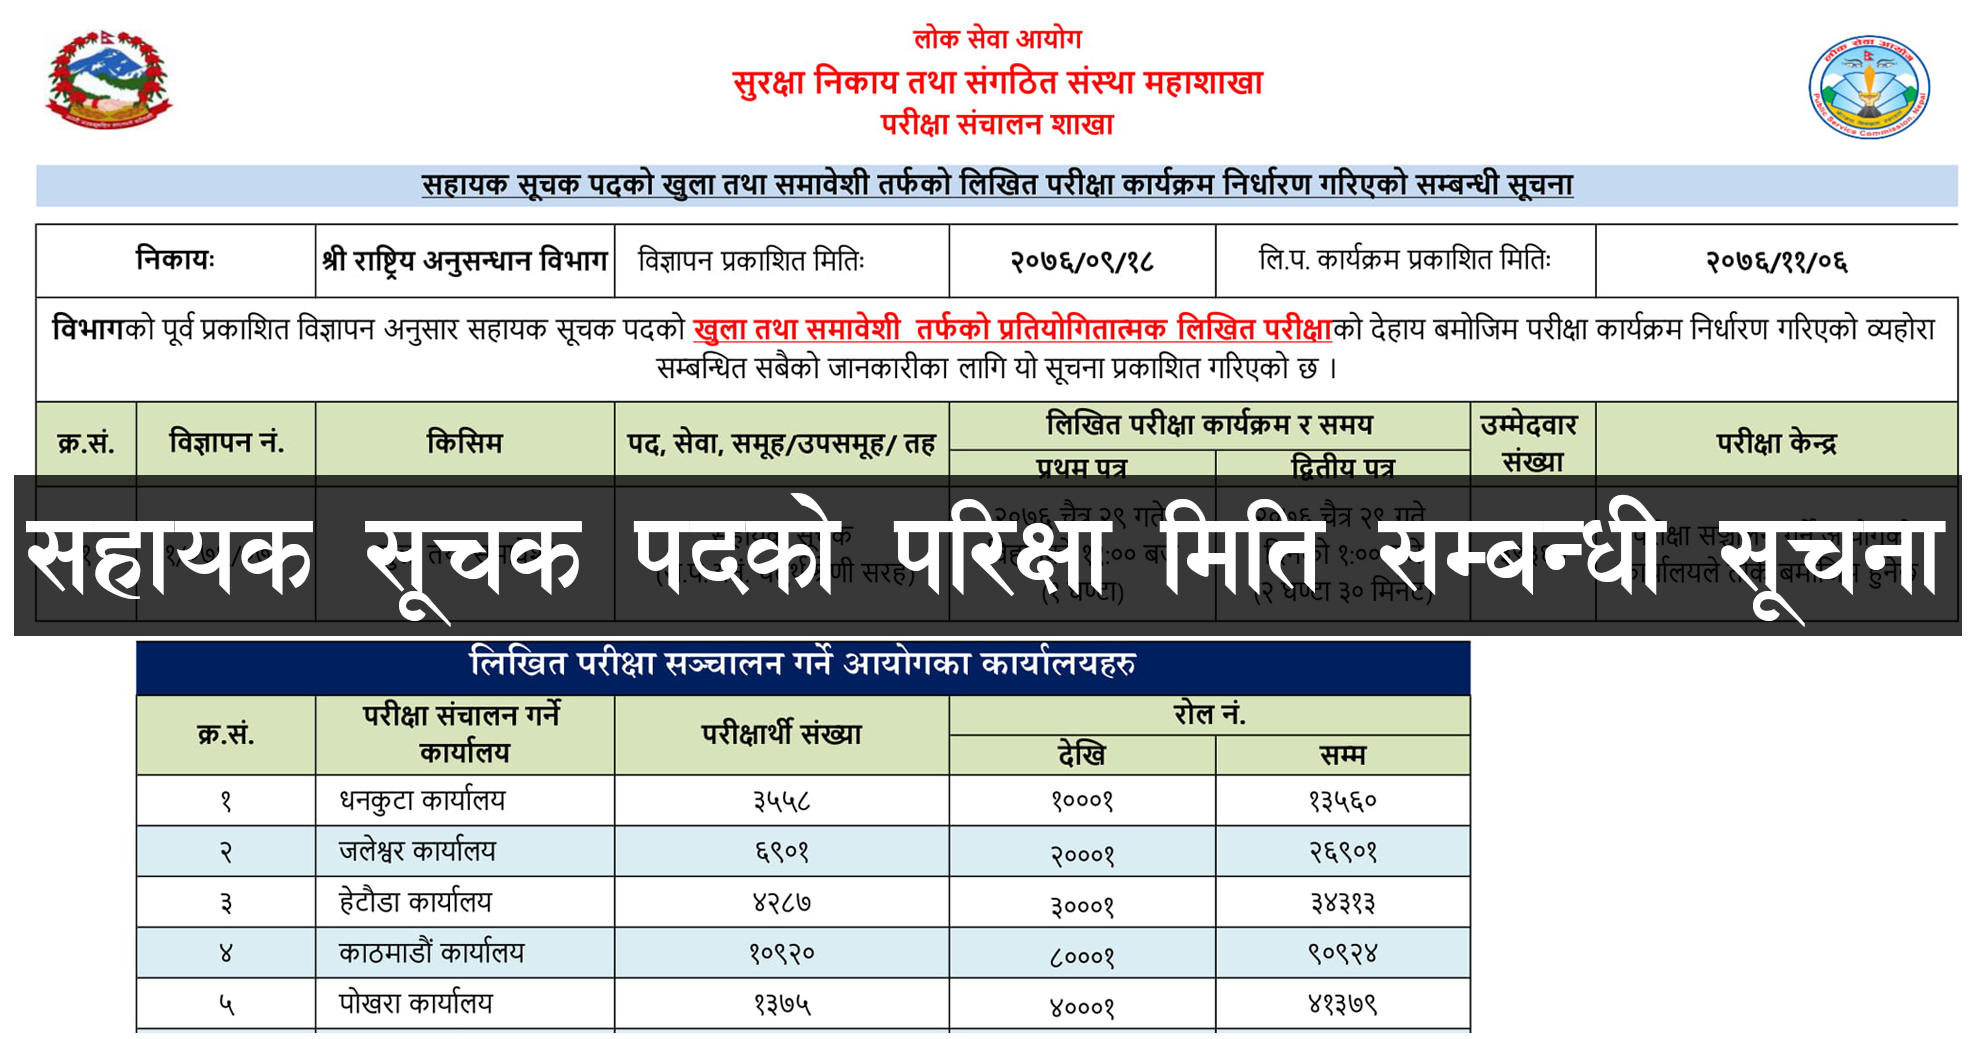 Rastriya Anusandhan Bibhag published sahayak suchak exam date. Sahayak Suchak Exam center published Lok Sewa Aayog NID Sahayak Suchak Exam Center.